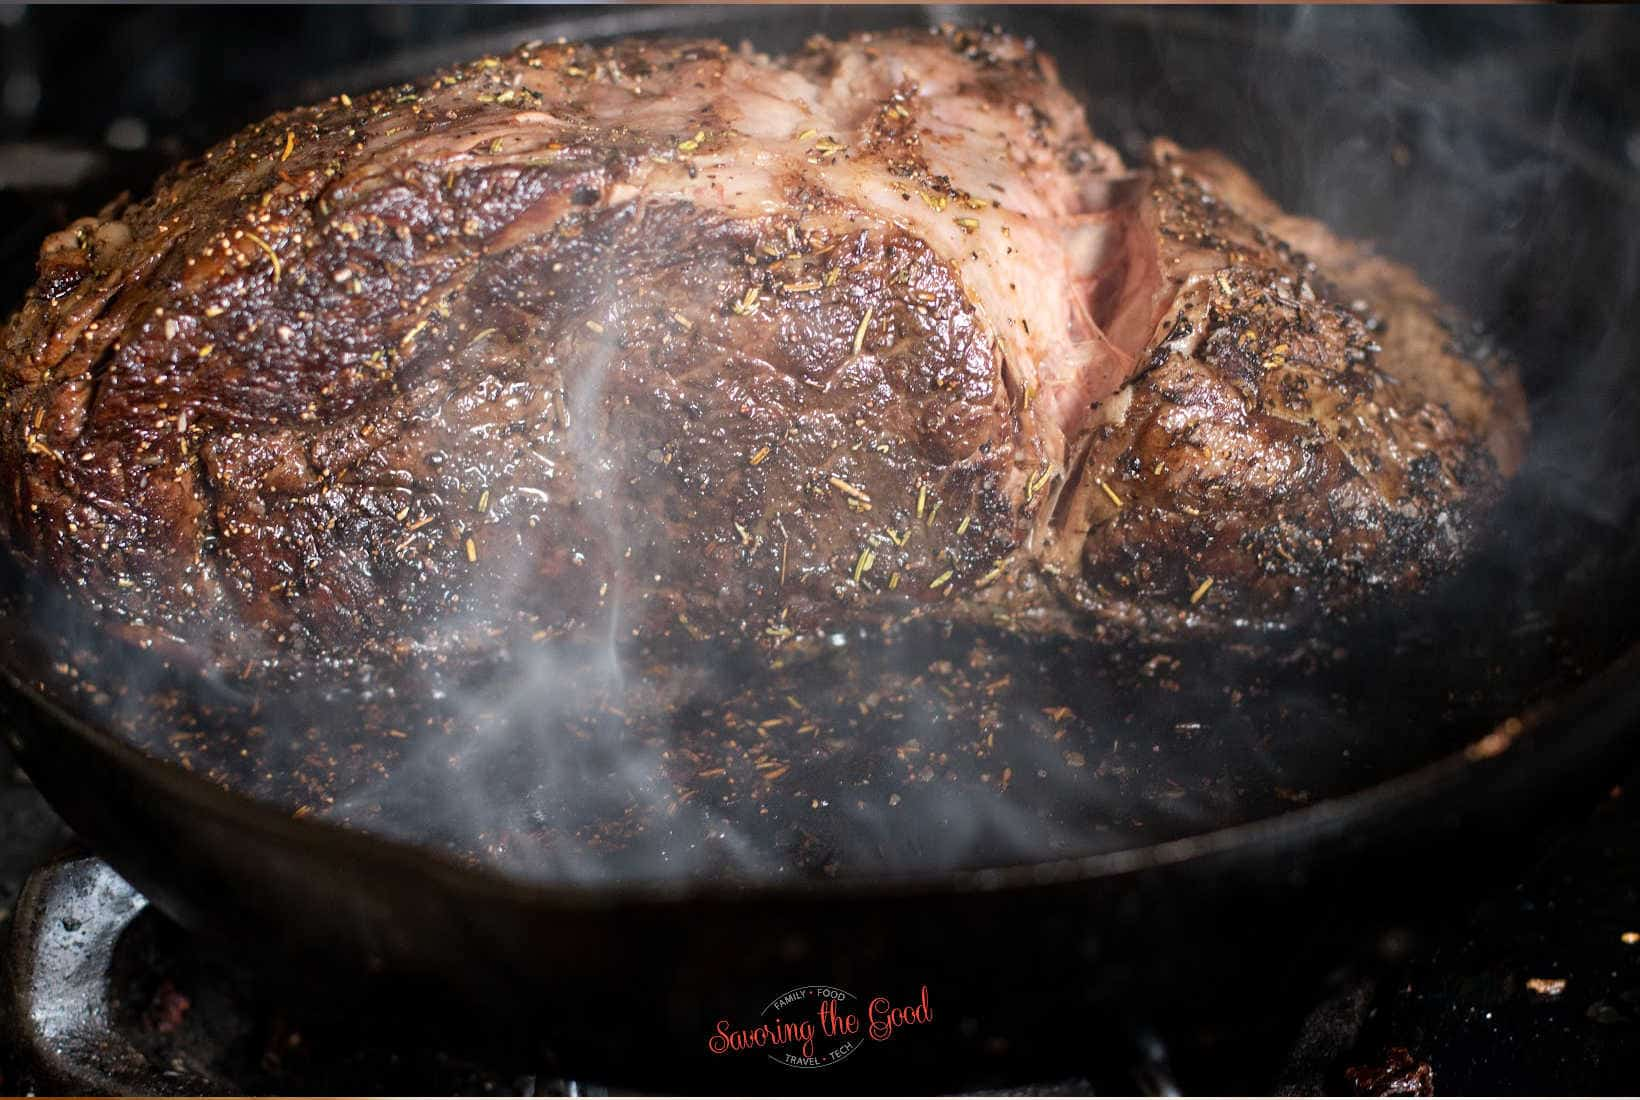 searing a piece of prime rib in a screaming hot cast iron skillet, smoke covers the meat